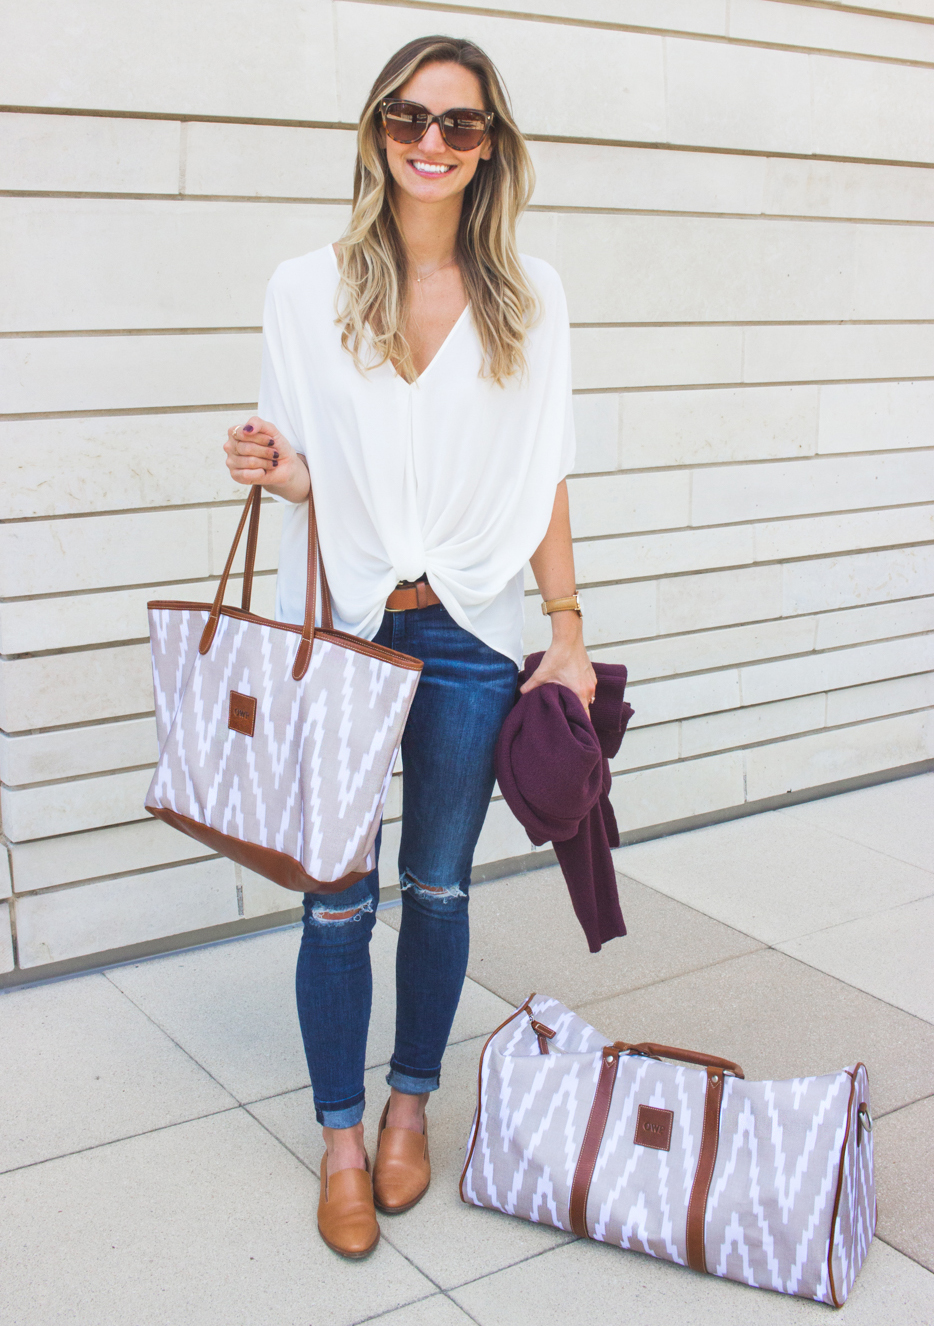 livvyland-blog-olivia-watson-barrington-gifts-chevron-print-monogram-tote-bag-duffel-luggage-dl-1961-emma-jeans-austin-texas-fashion-blogger-2